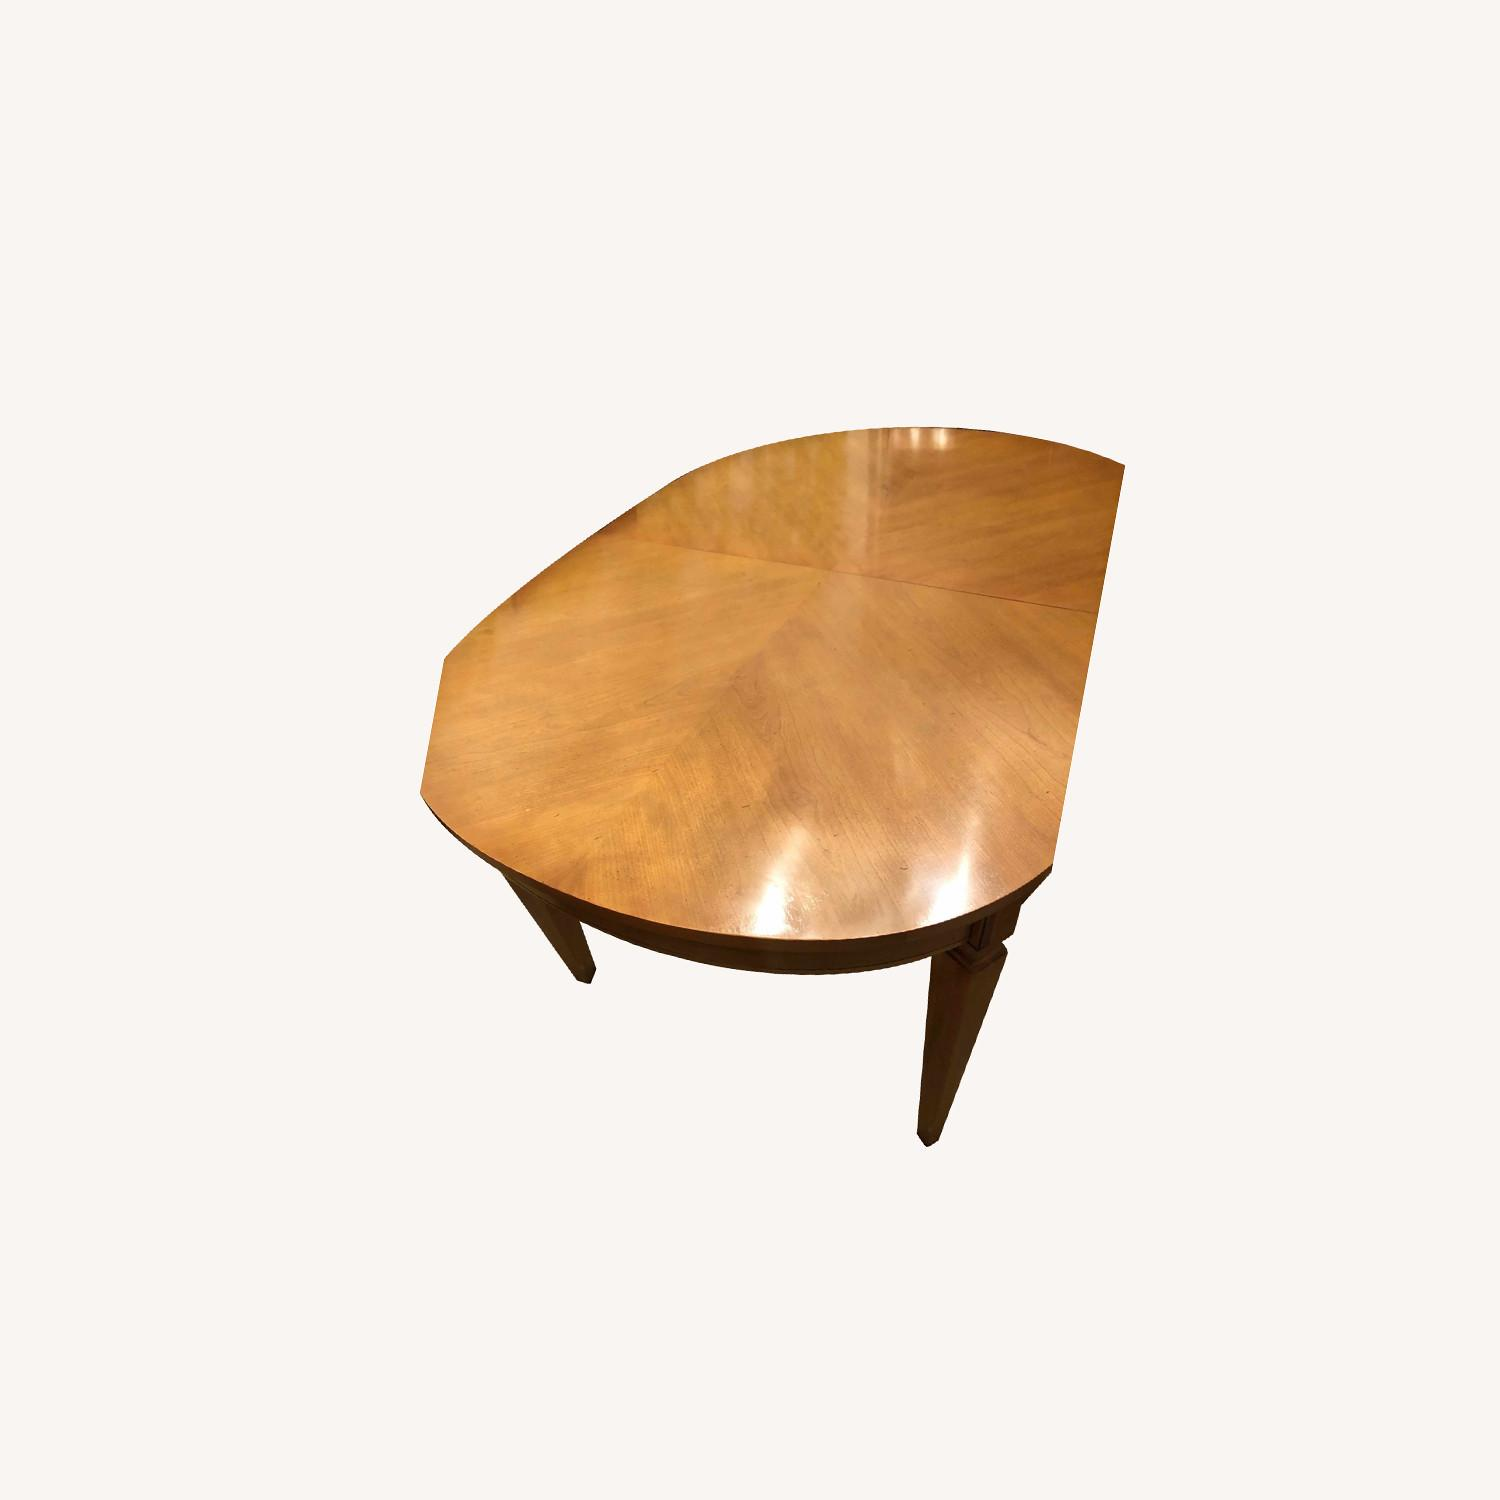 Italian Provincial Oval Dining Table - image-0